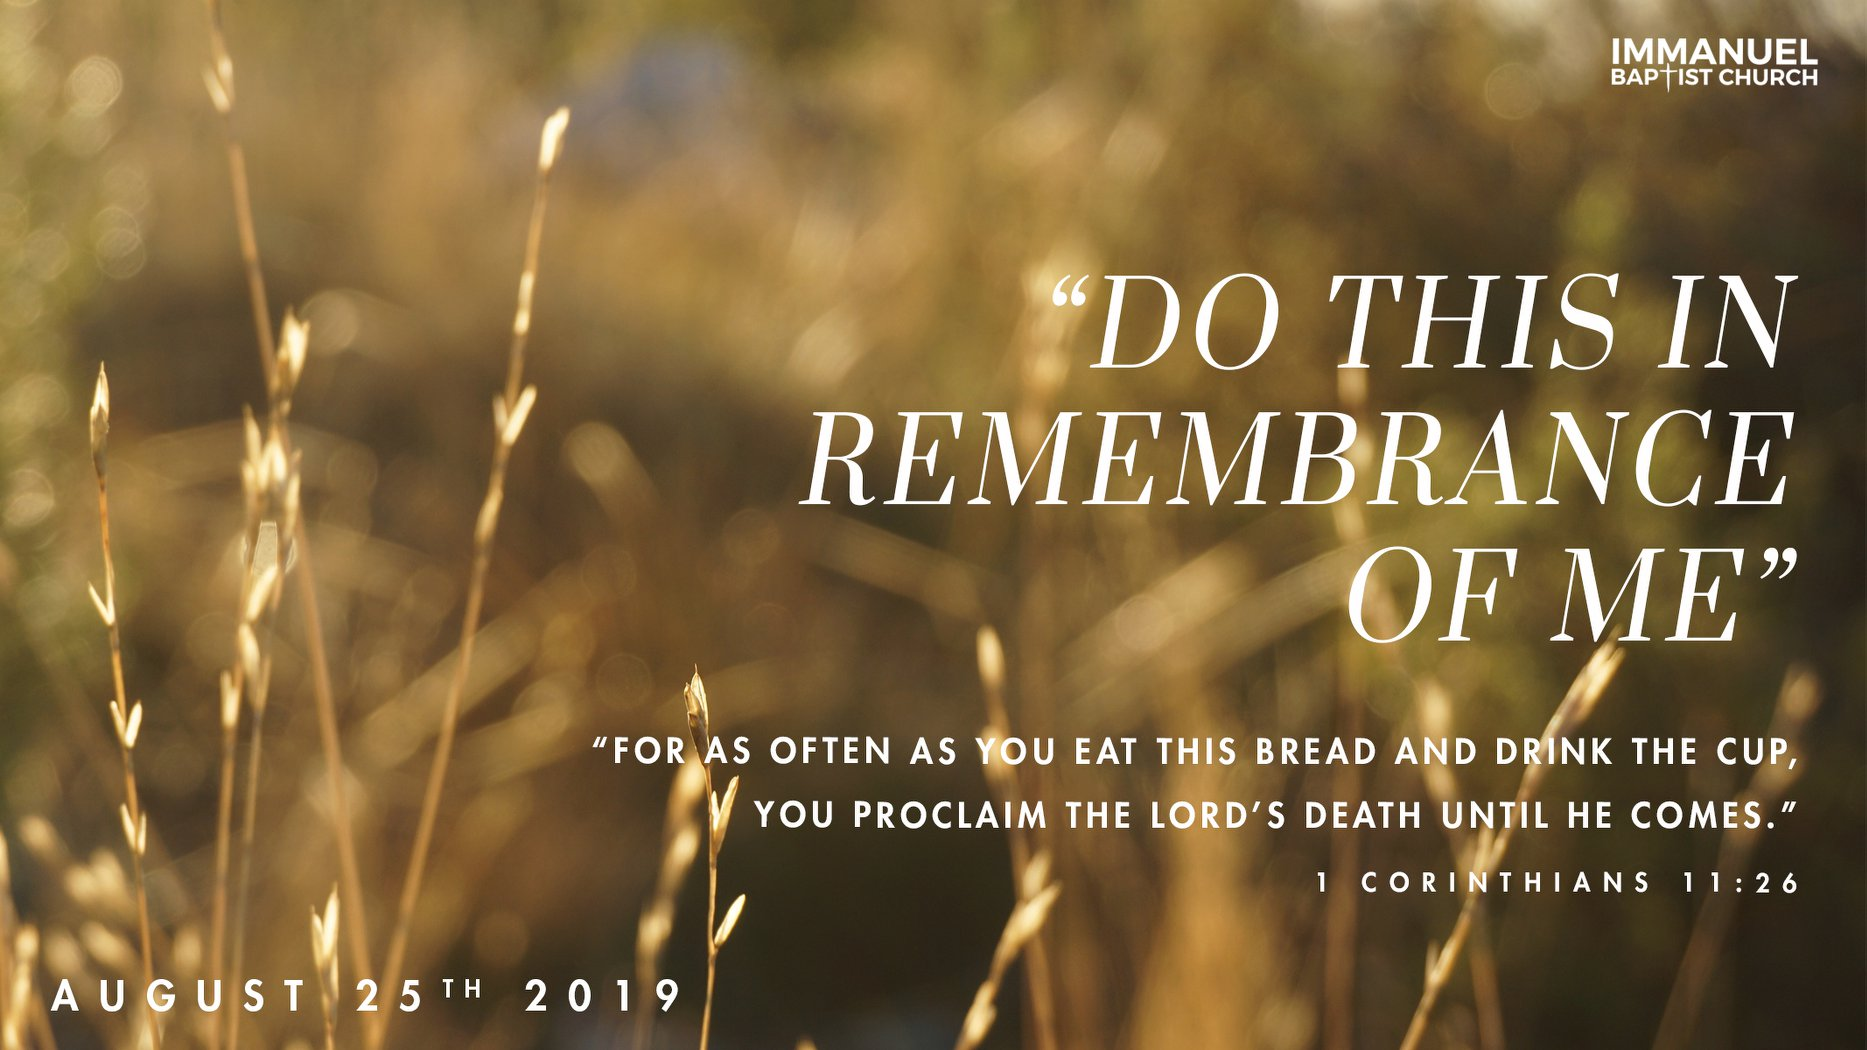 """Do This in Remembrance of Me"" Image"